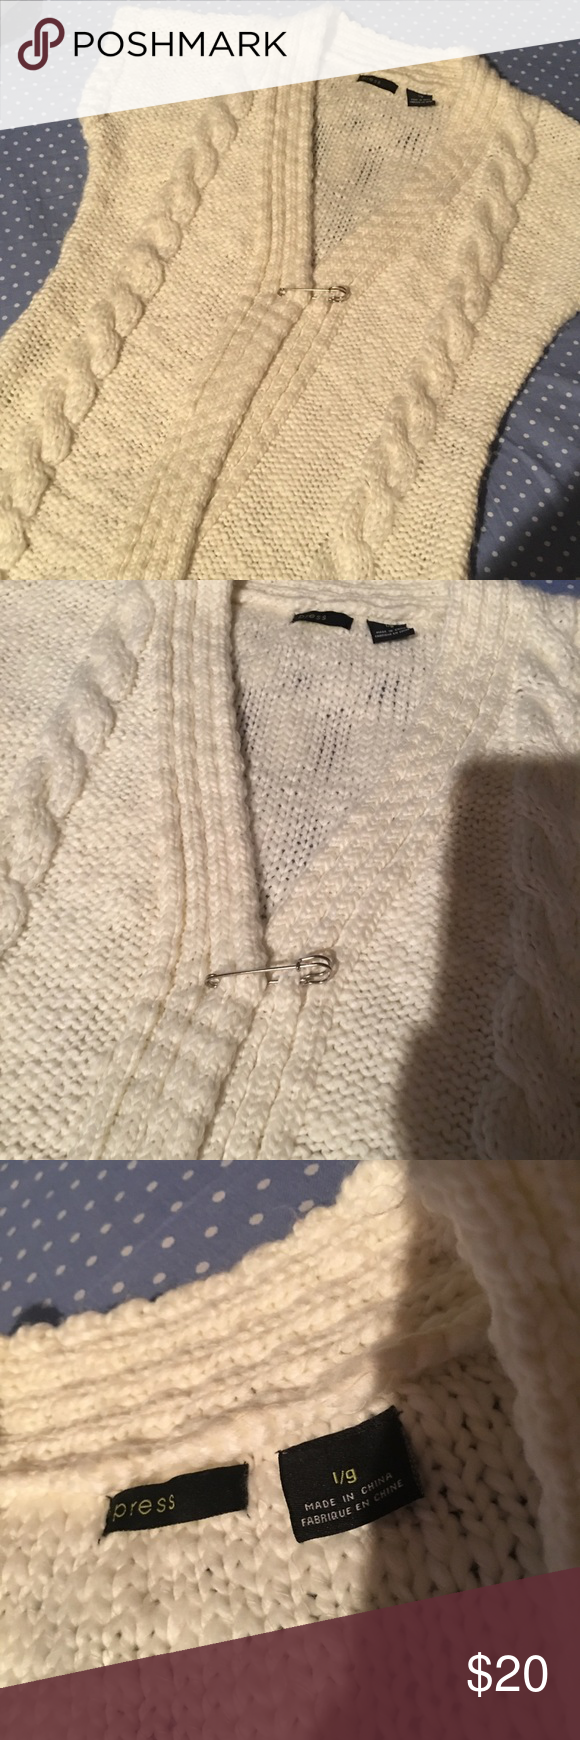 """Sweater vest with large pin for closure Long Sweater vest with large pin for closure. Can be wrapped and pinned or worn open! 31 1/2"""" long. Off white/winter white in color. Great condition! Sweaters"""